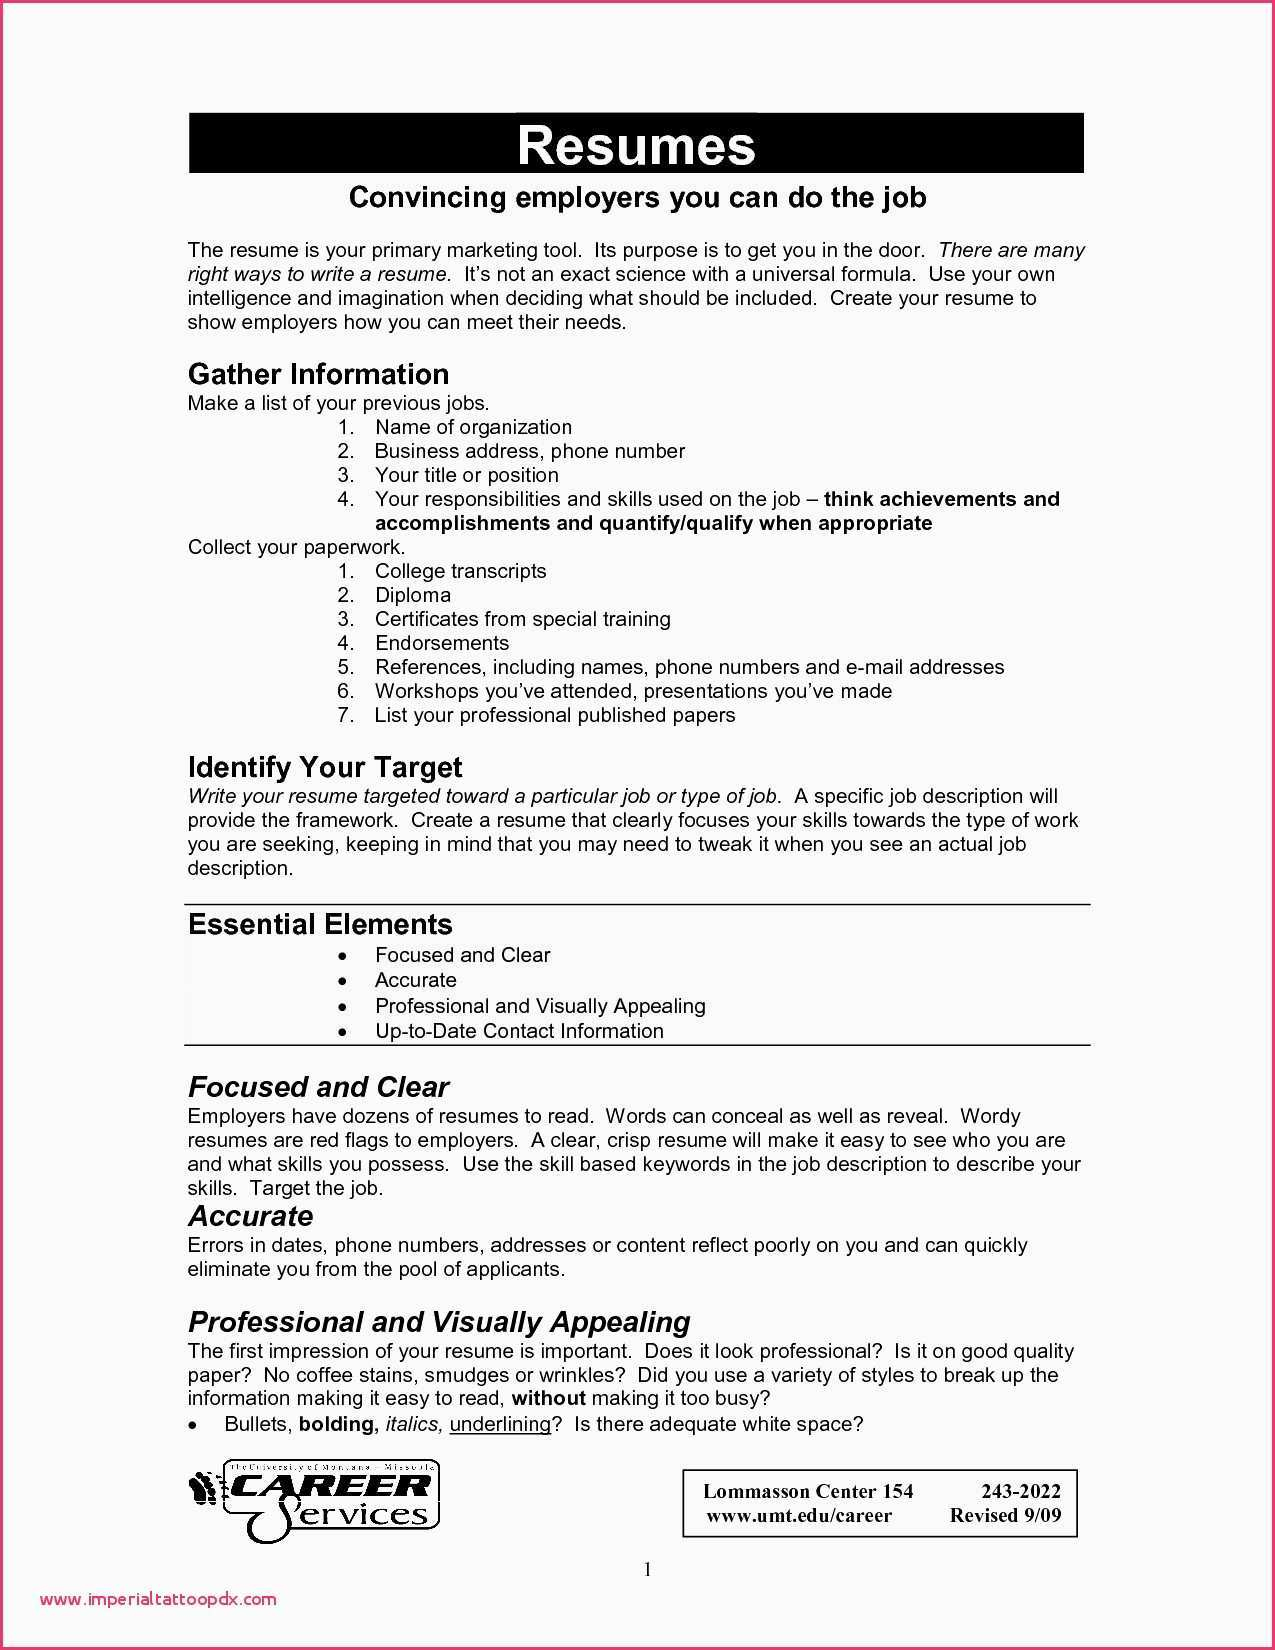 Resume for It Job - Words that Employers Look for In Resumes How to Update A Resume New